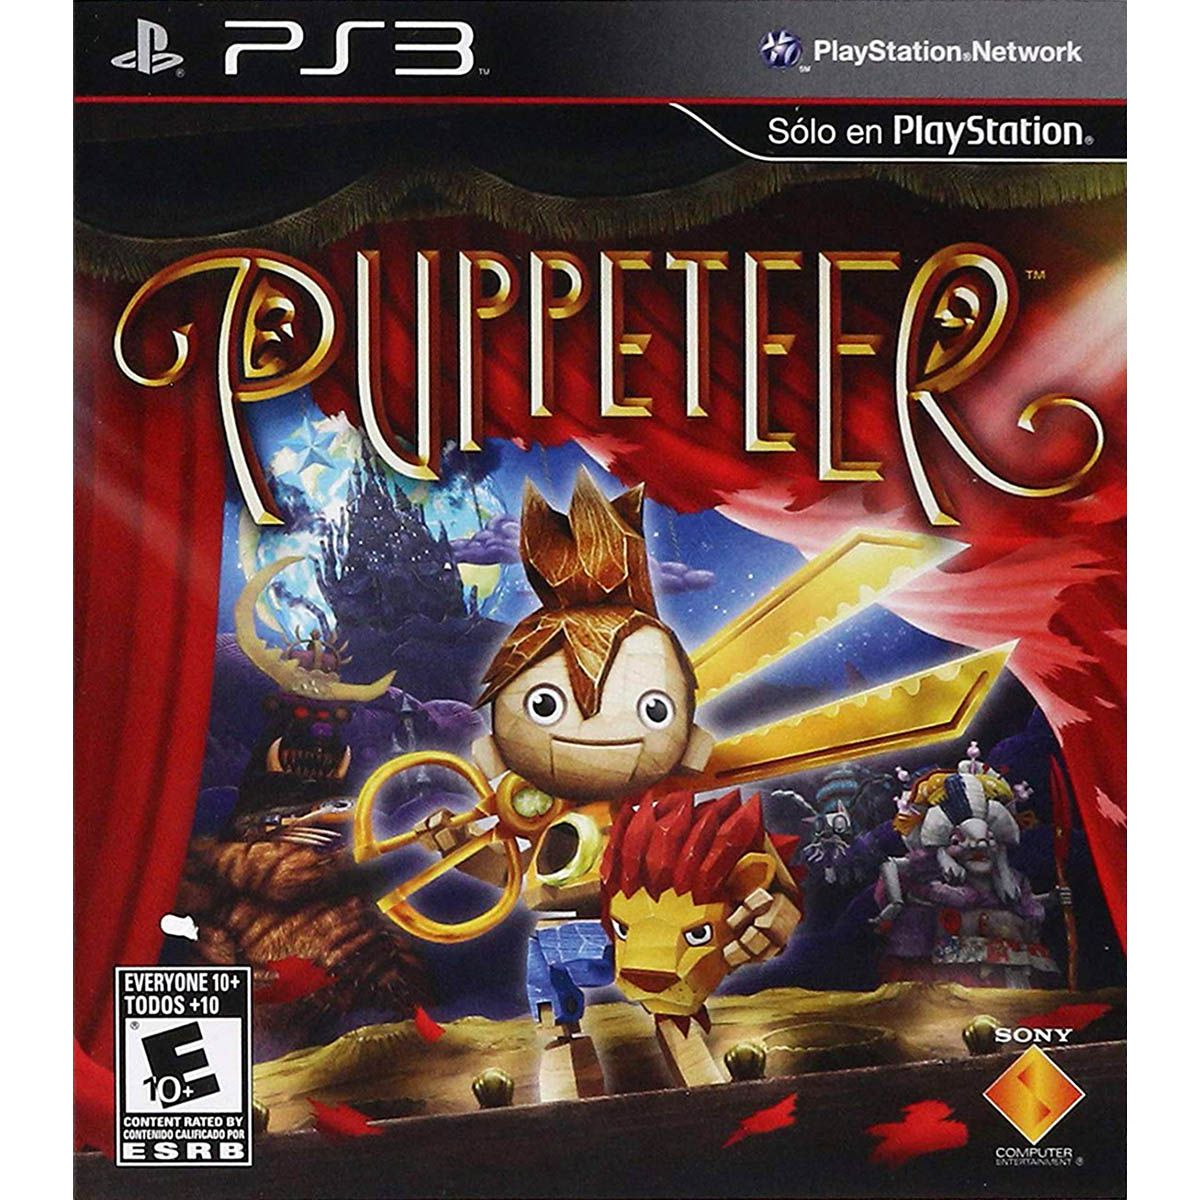 Puppetter - PS3